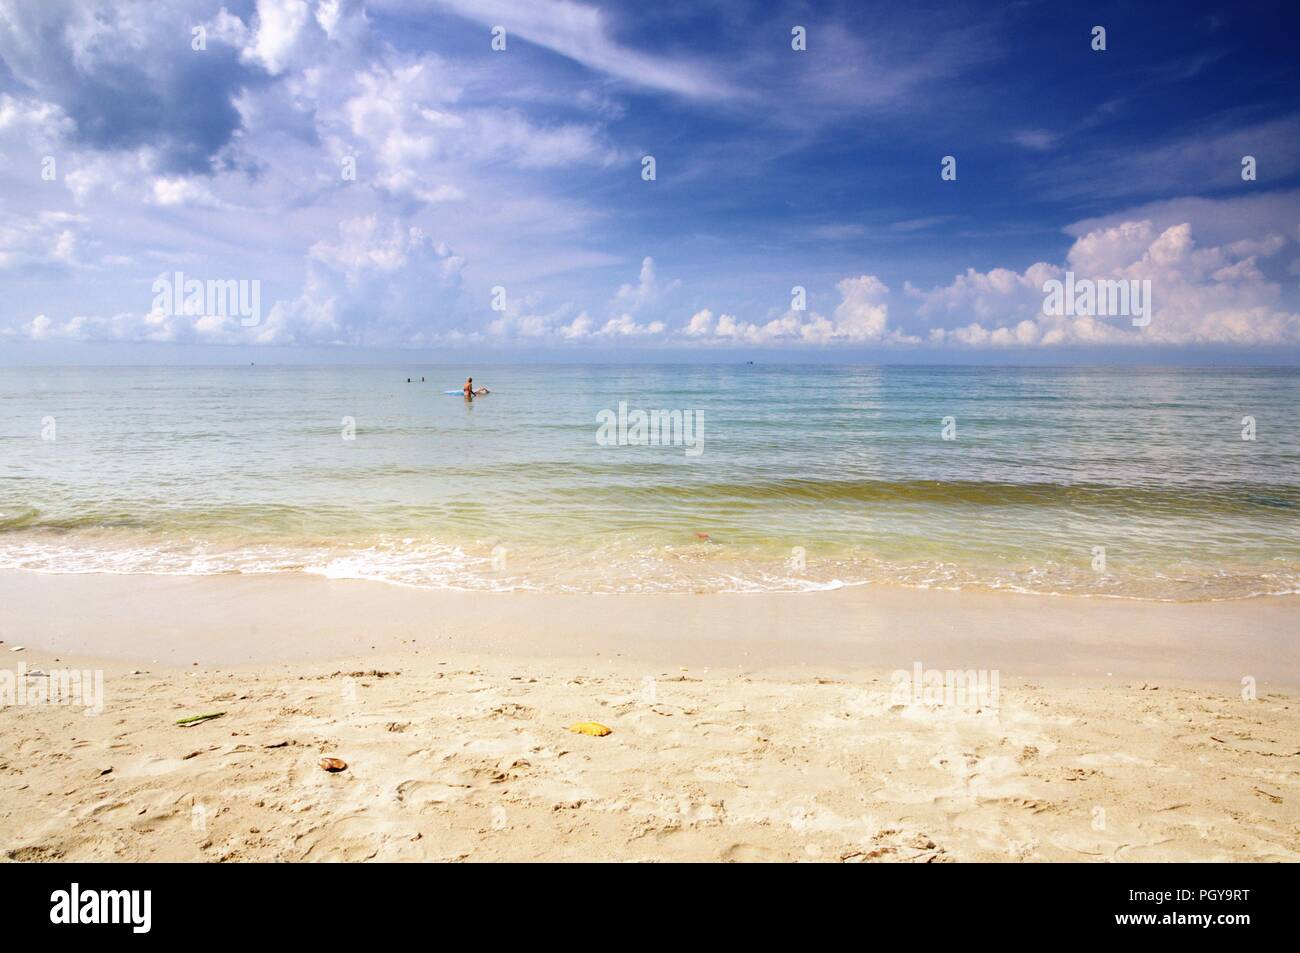 The White Sand Beach. Koh Chang island, Thailand. - Stock Image